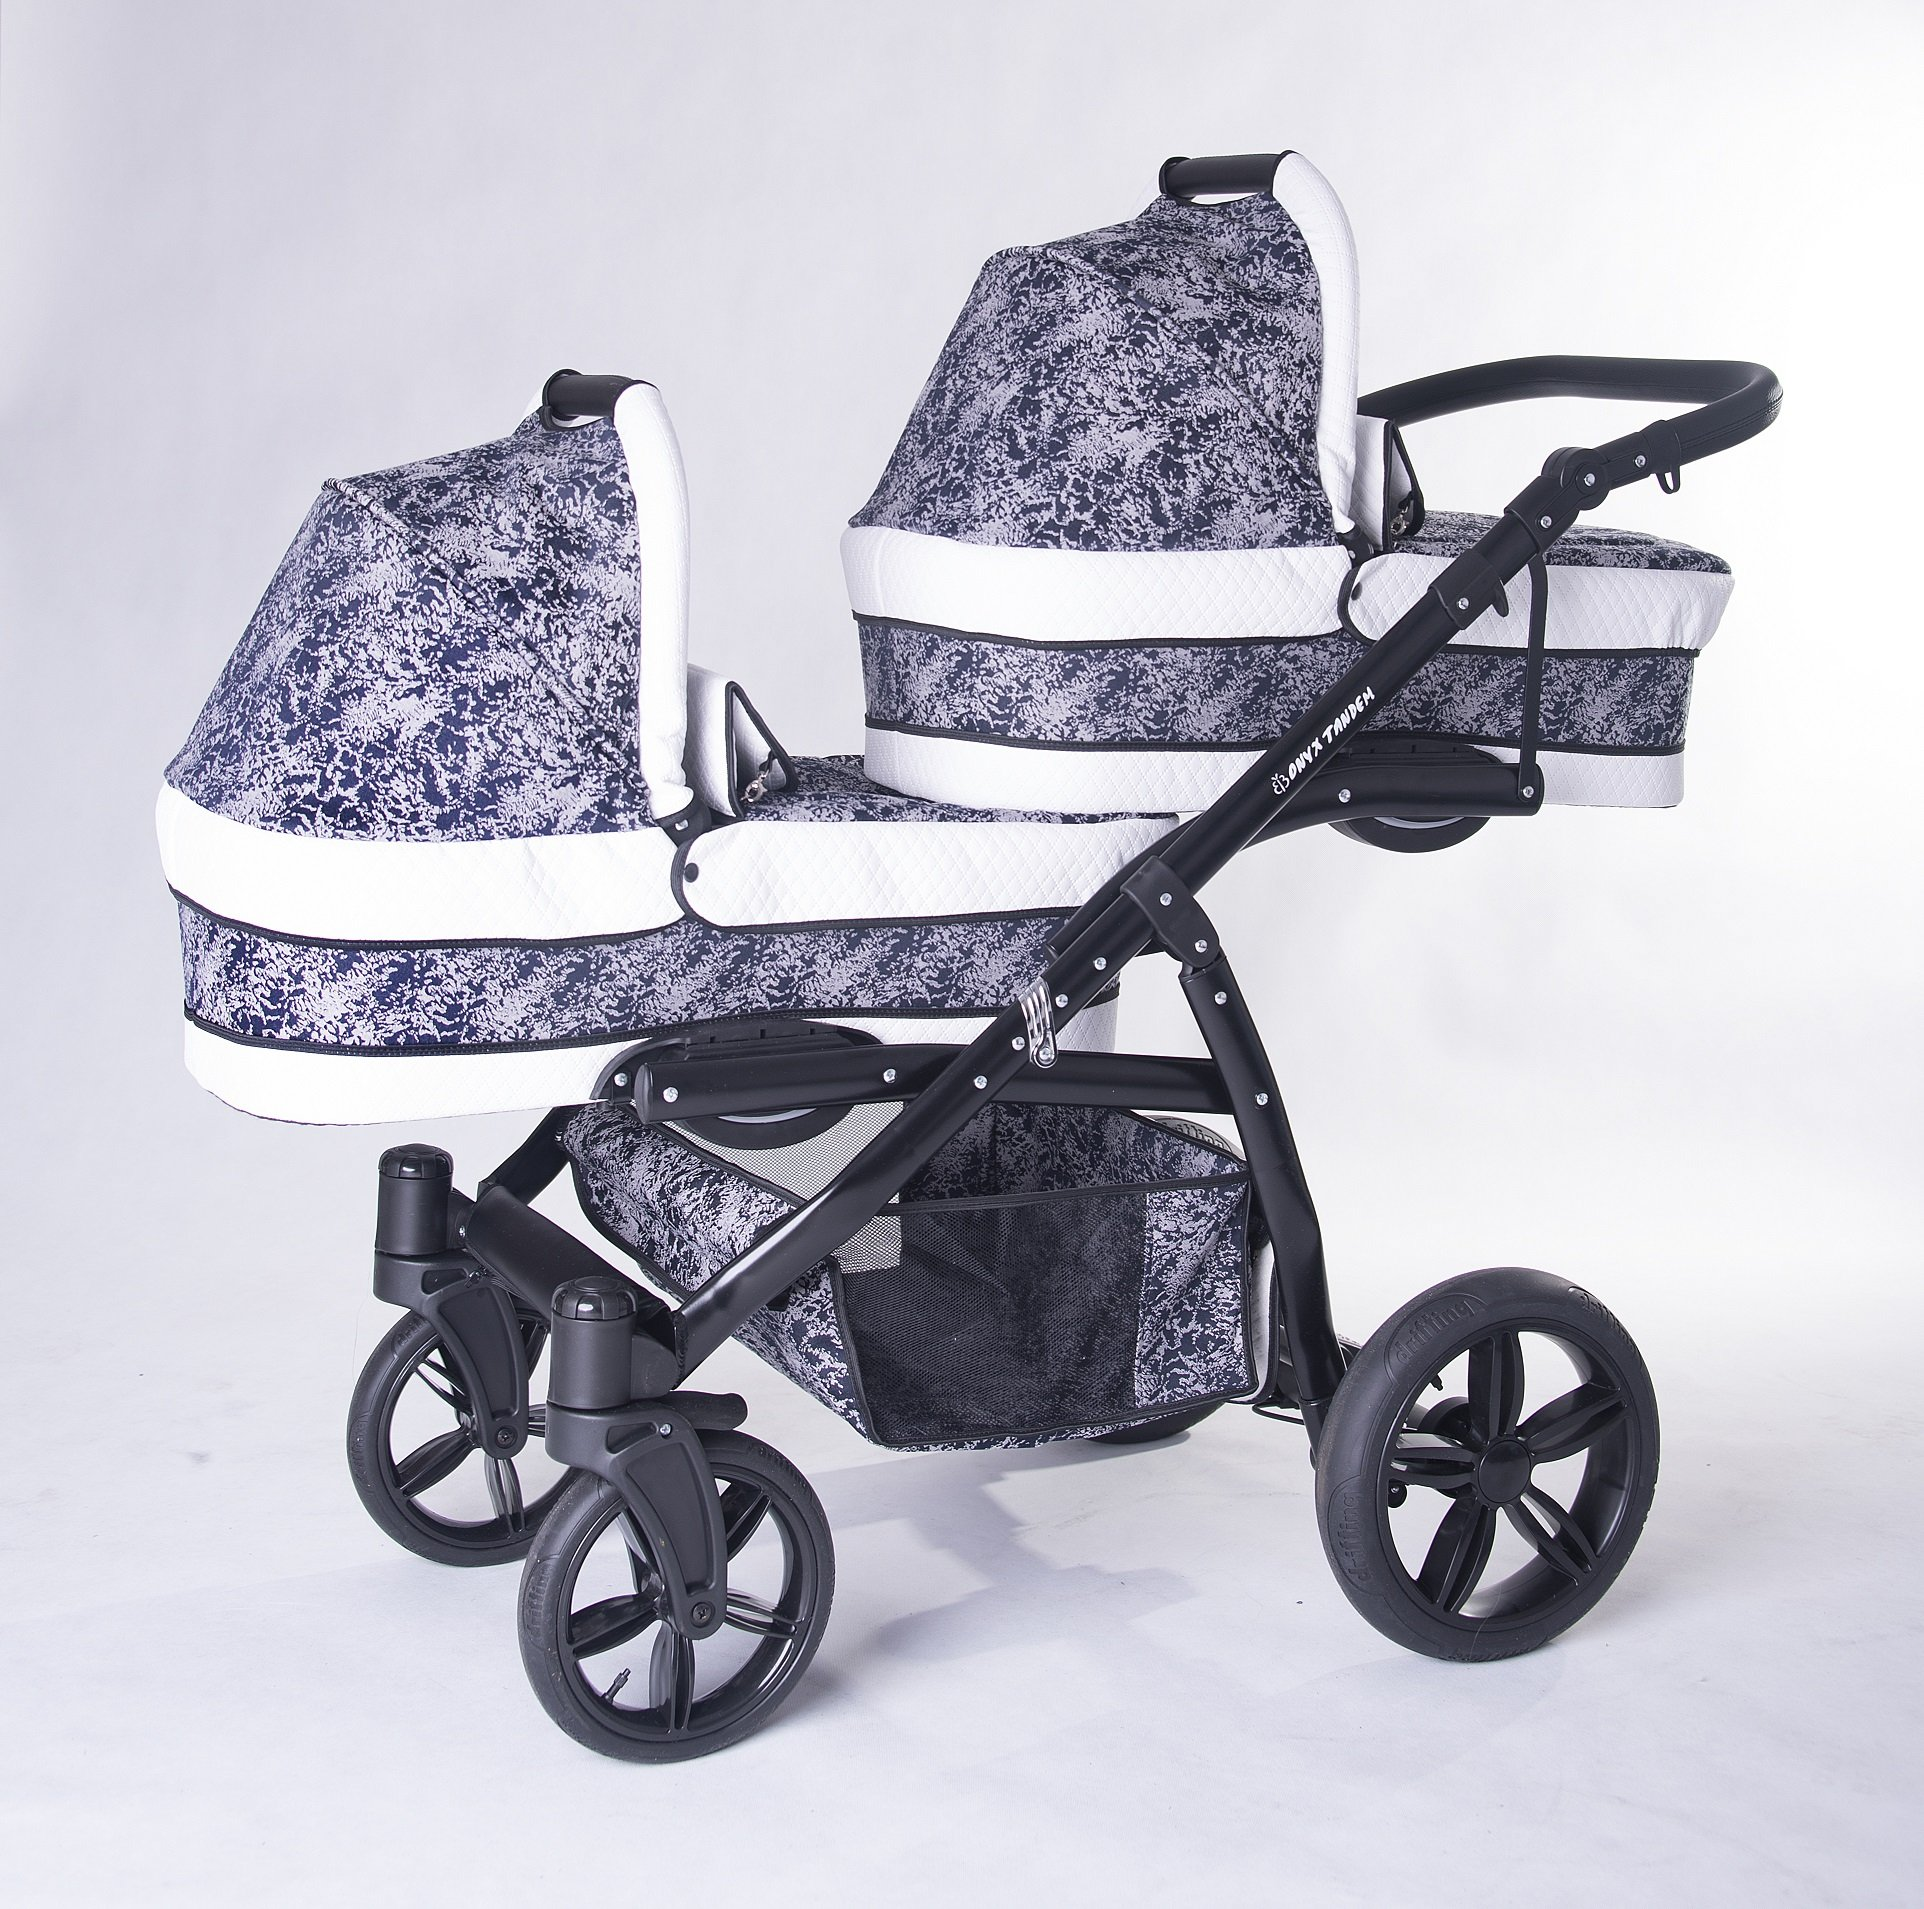 Double pram for twins. 2 carrycots + 2 buggies + 2 car seats. Blue + white ecoleather. BBtwin Berber Carlo Directly from the factory, warranty and advice. Made un the EU according to the regulations EN1888 and ECE44/04. Colour blue and silver with whote ecoleather, chassis black. Includes 2 carrycots, 2 buggy seats, 2 car seats, bag, 2 footcovers, 2 rain covers, 2 mosquito nets, lower basket, Features: lightweight aluminium frame, easy bending, adjustable handlebar, central brake, lockable front swivel wheels, shock absorbers, each buggy can be instaled independently in both directions, carrycots with a mattress and a washable cover, backrest adjustable in various positions, safety bar and harness of 5 points 1